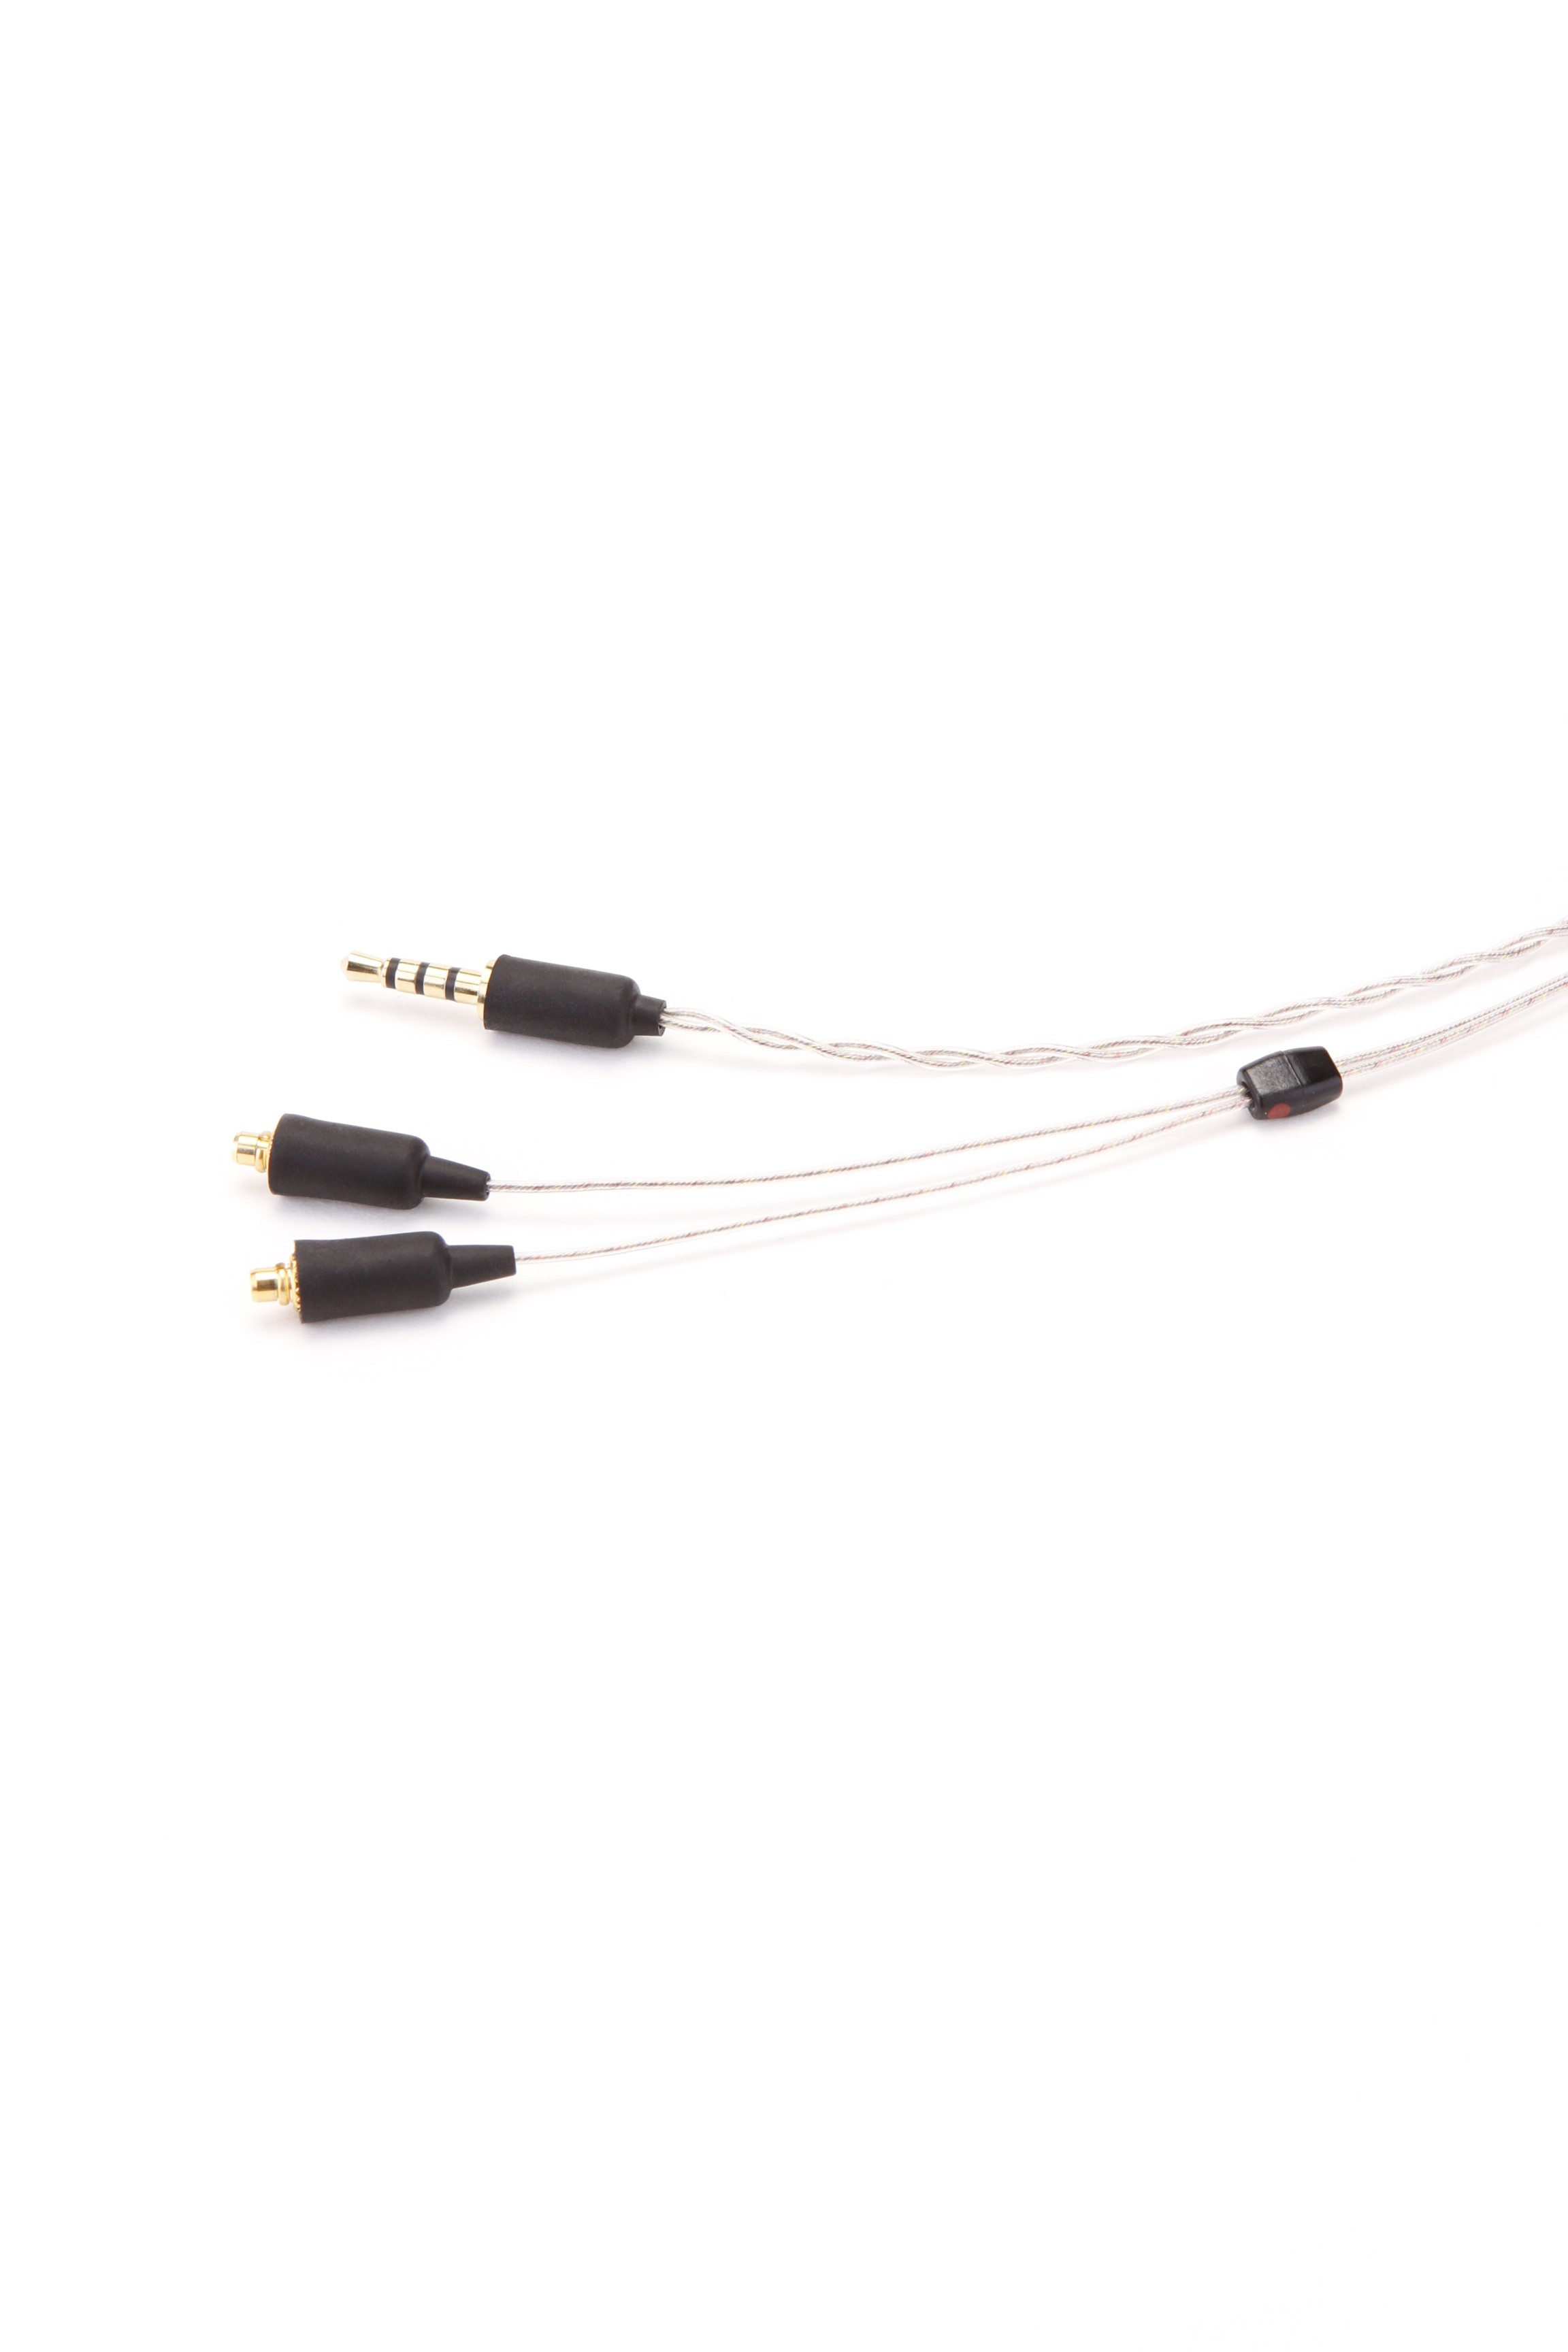 Ultra-Thin Balanced 52 Inch Cable